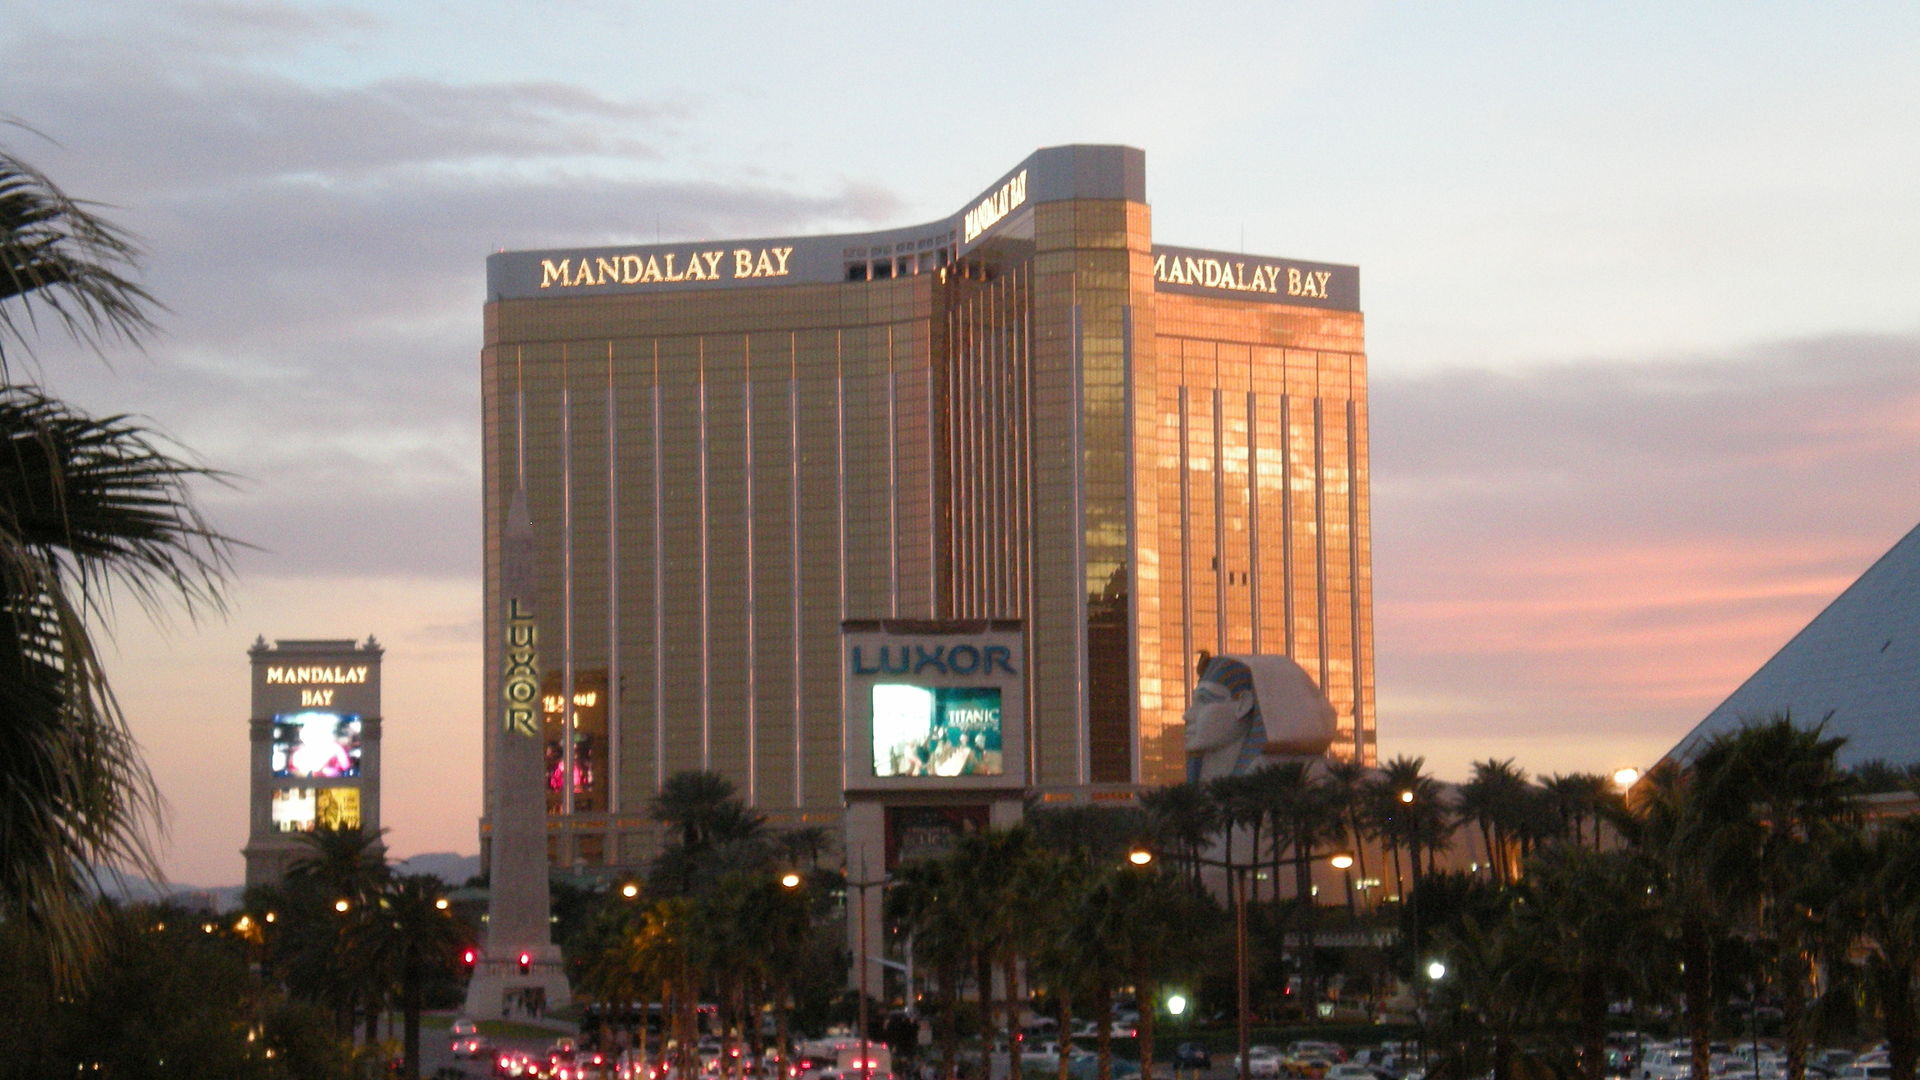 mandala bay casino